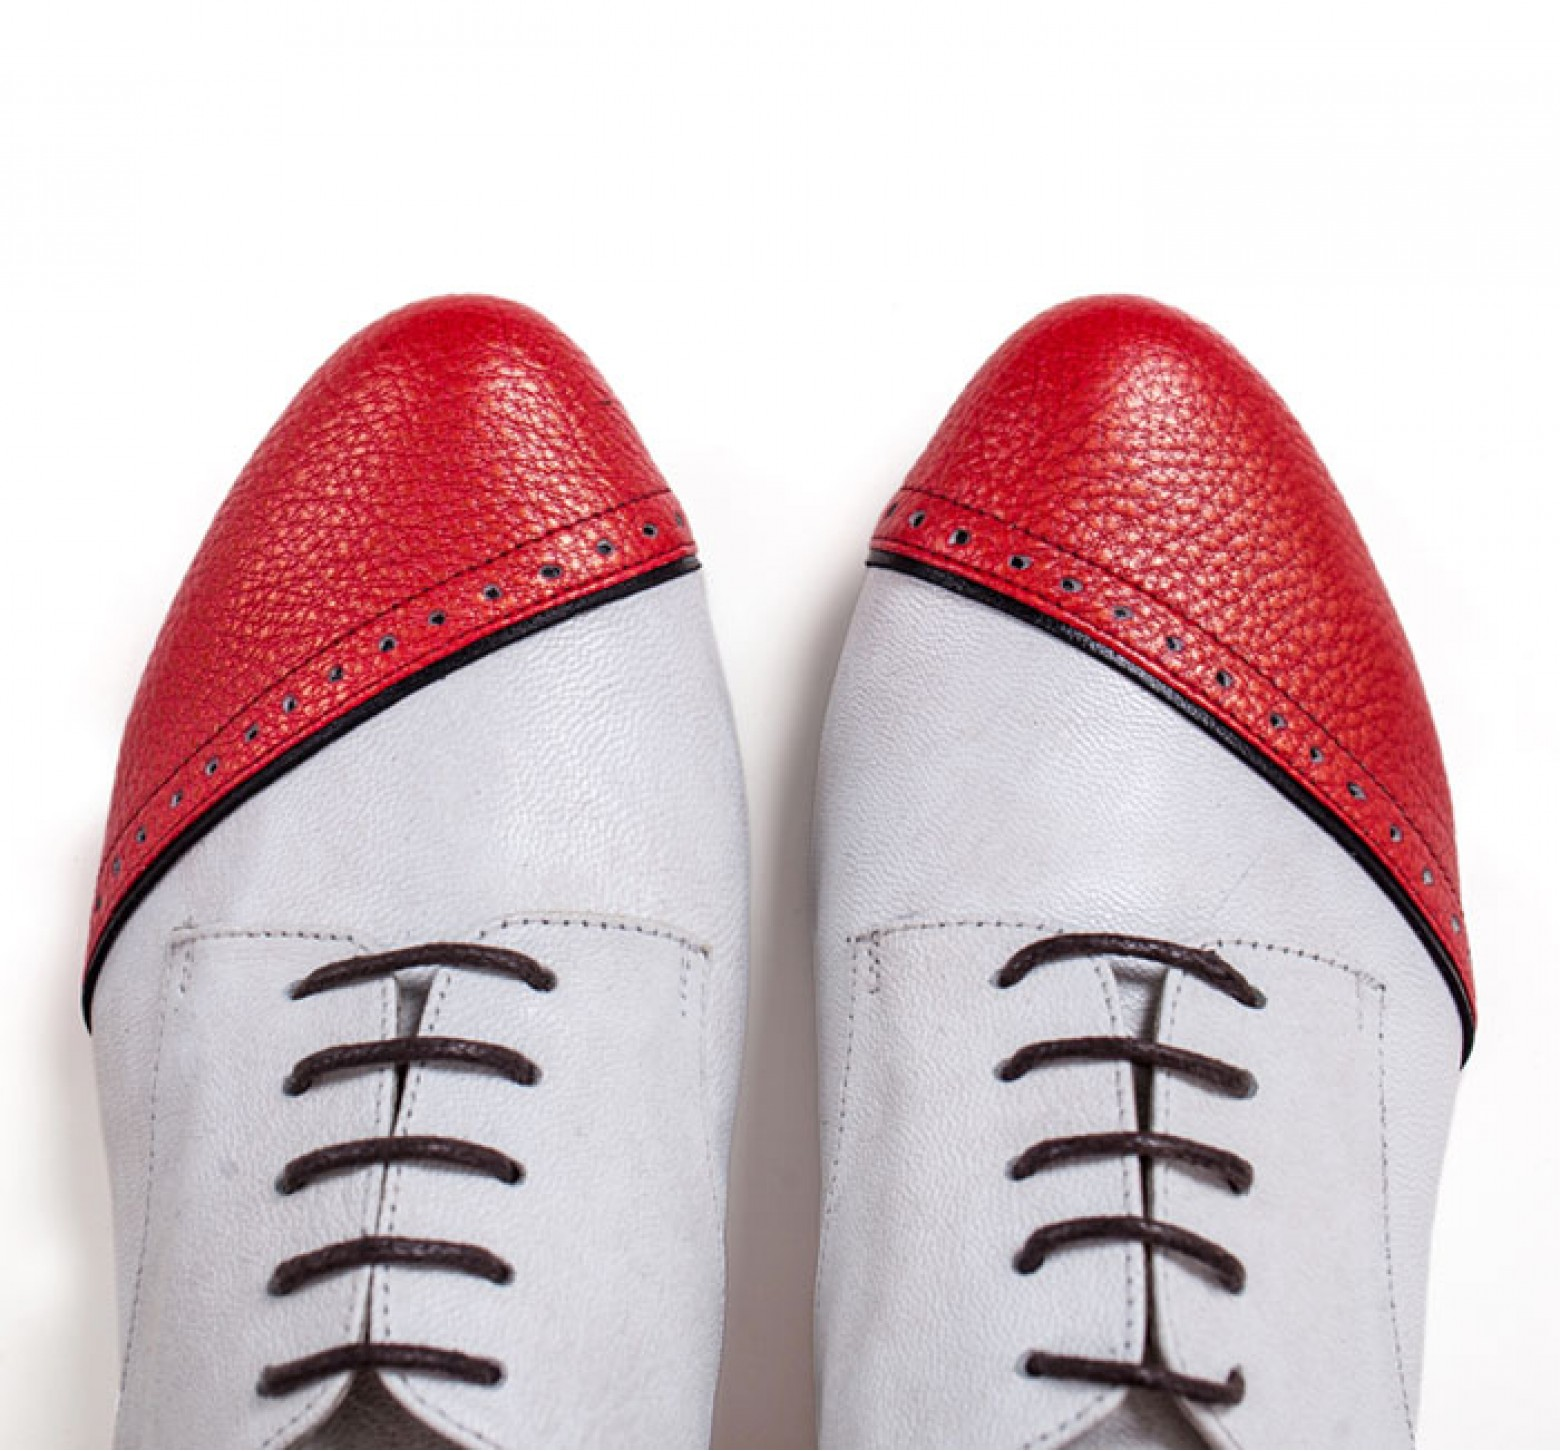 MOCASINI BRITISH RED & WHITE